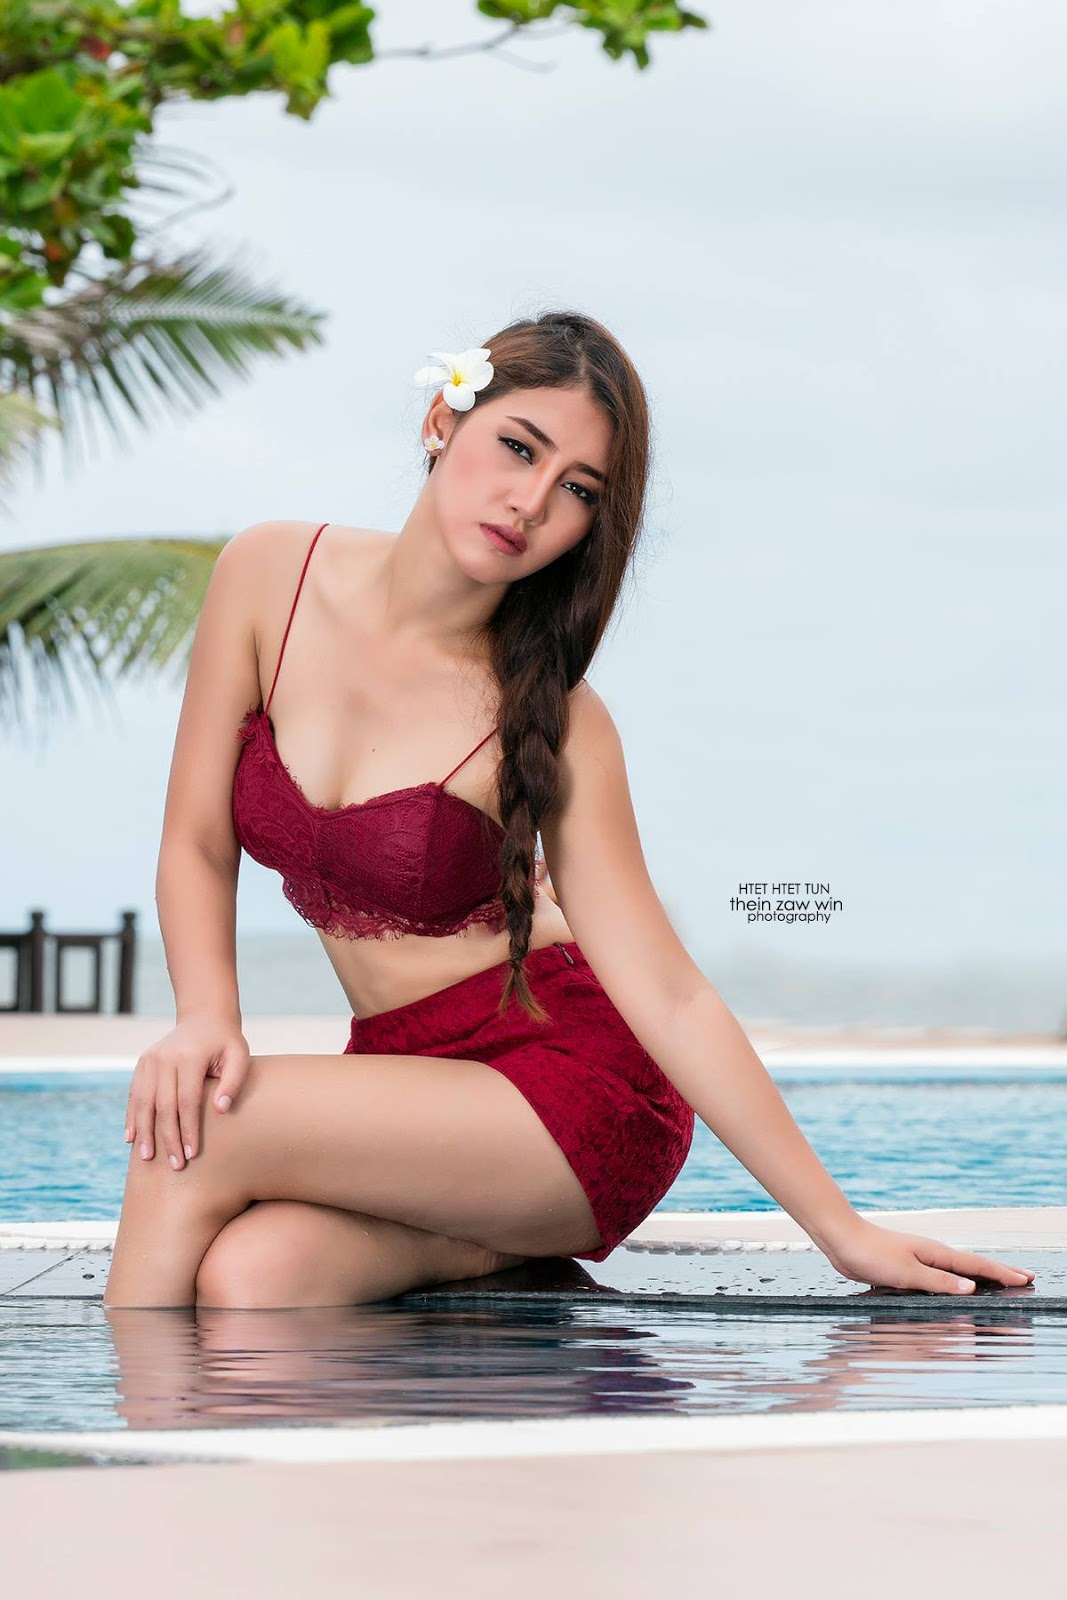 Miss Universe Myanmar 2017 Htet Htet Htun At The Beach